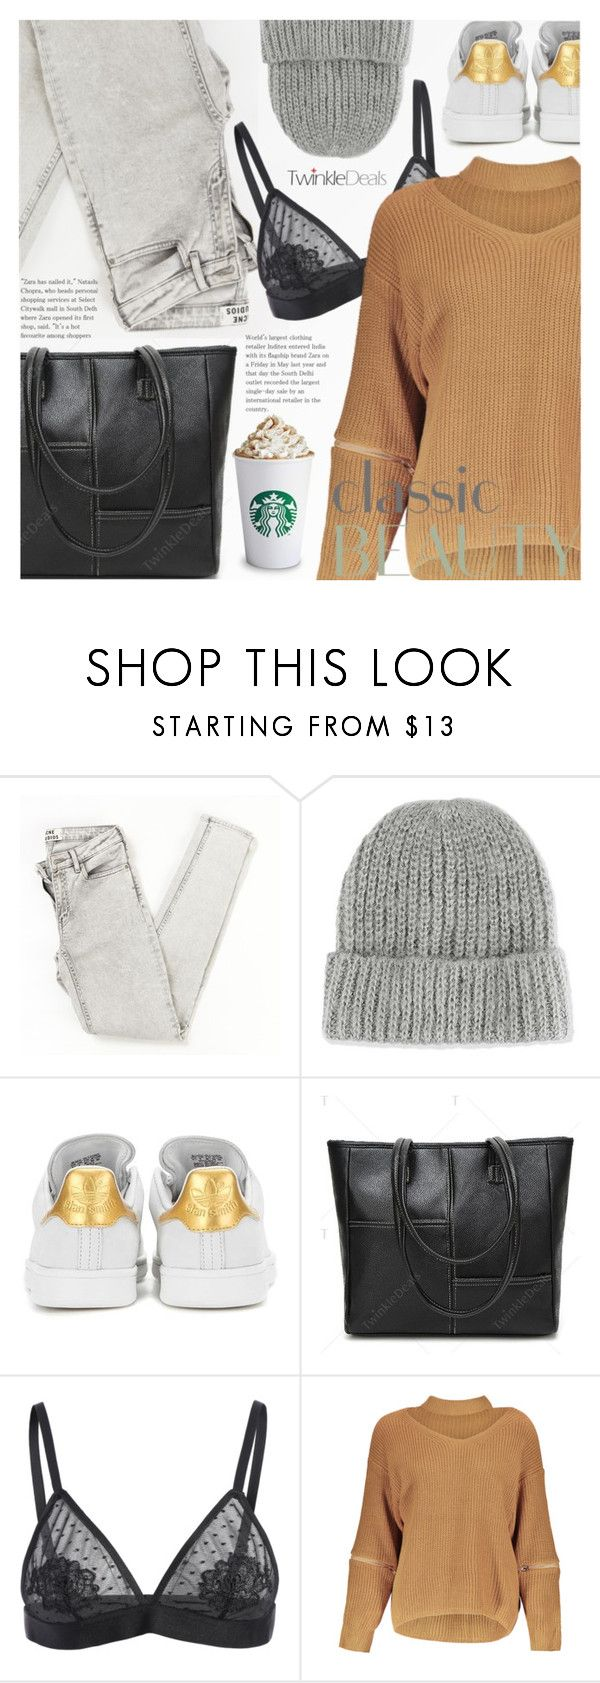 """""""Casual Style"""" by pokadoll ❤ liked on Polyvore featuring Topshop, adidas Originals, polyvoreeditorial and polyvoreset"""